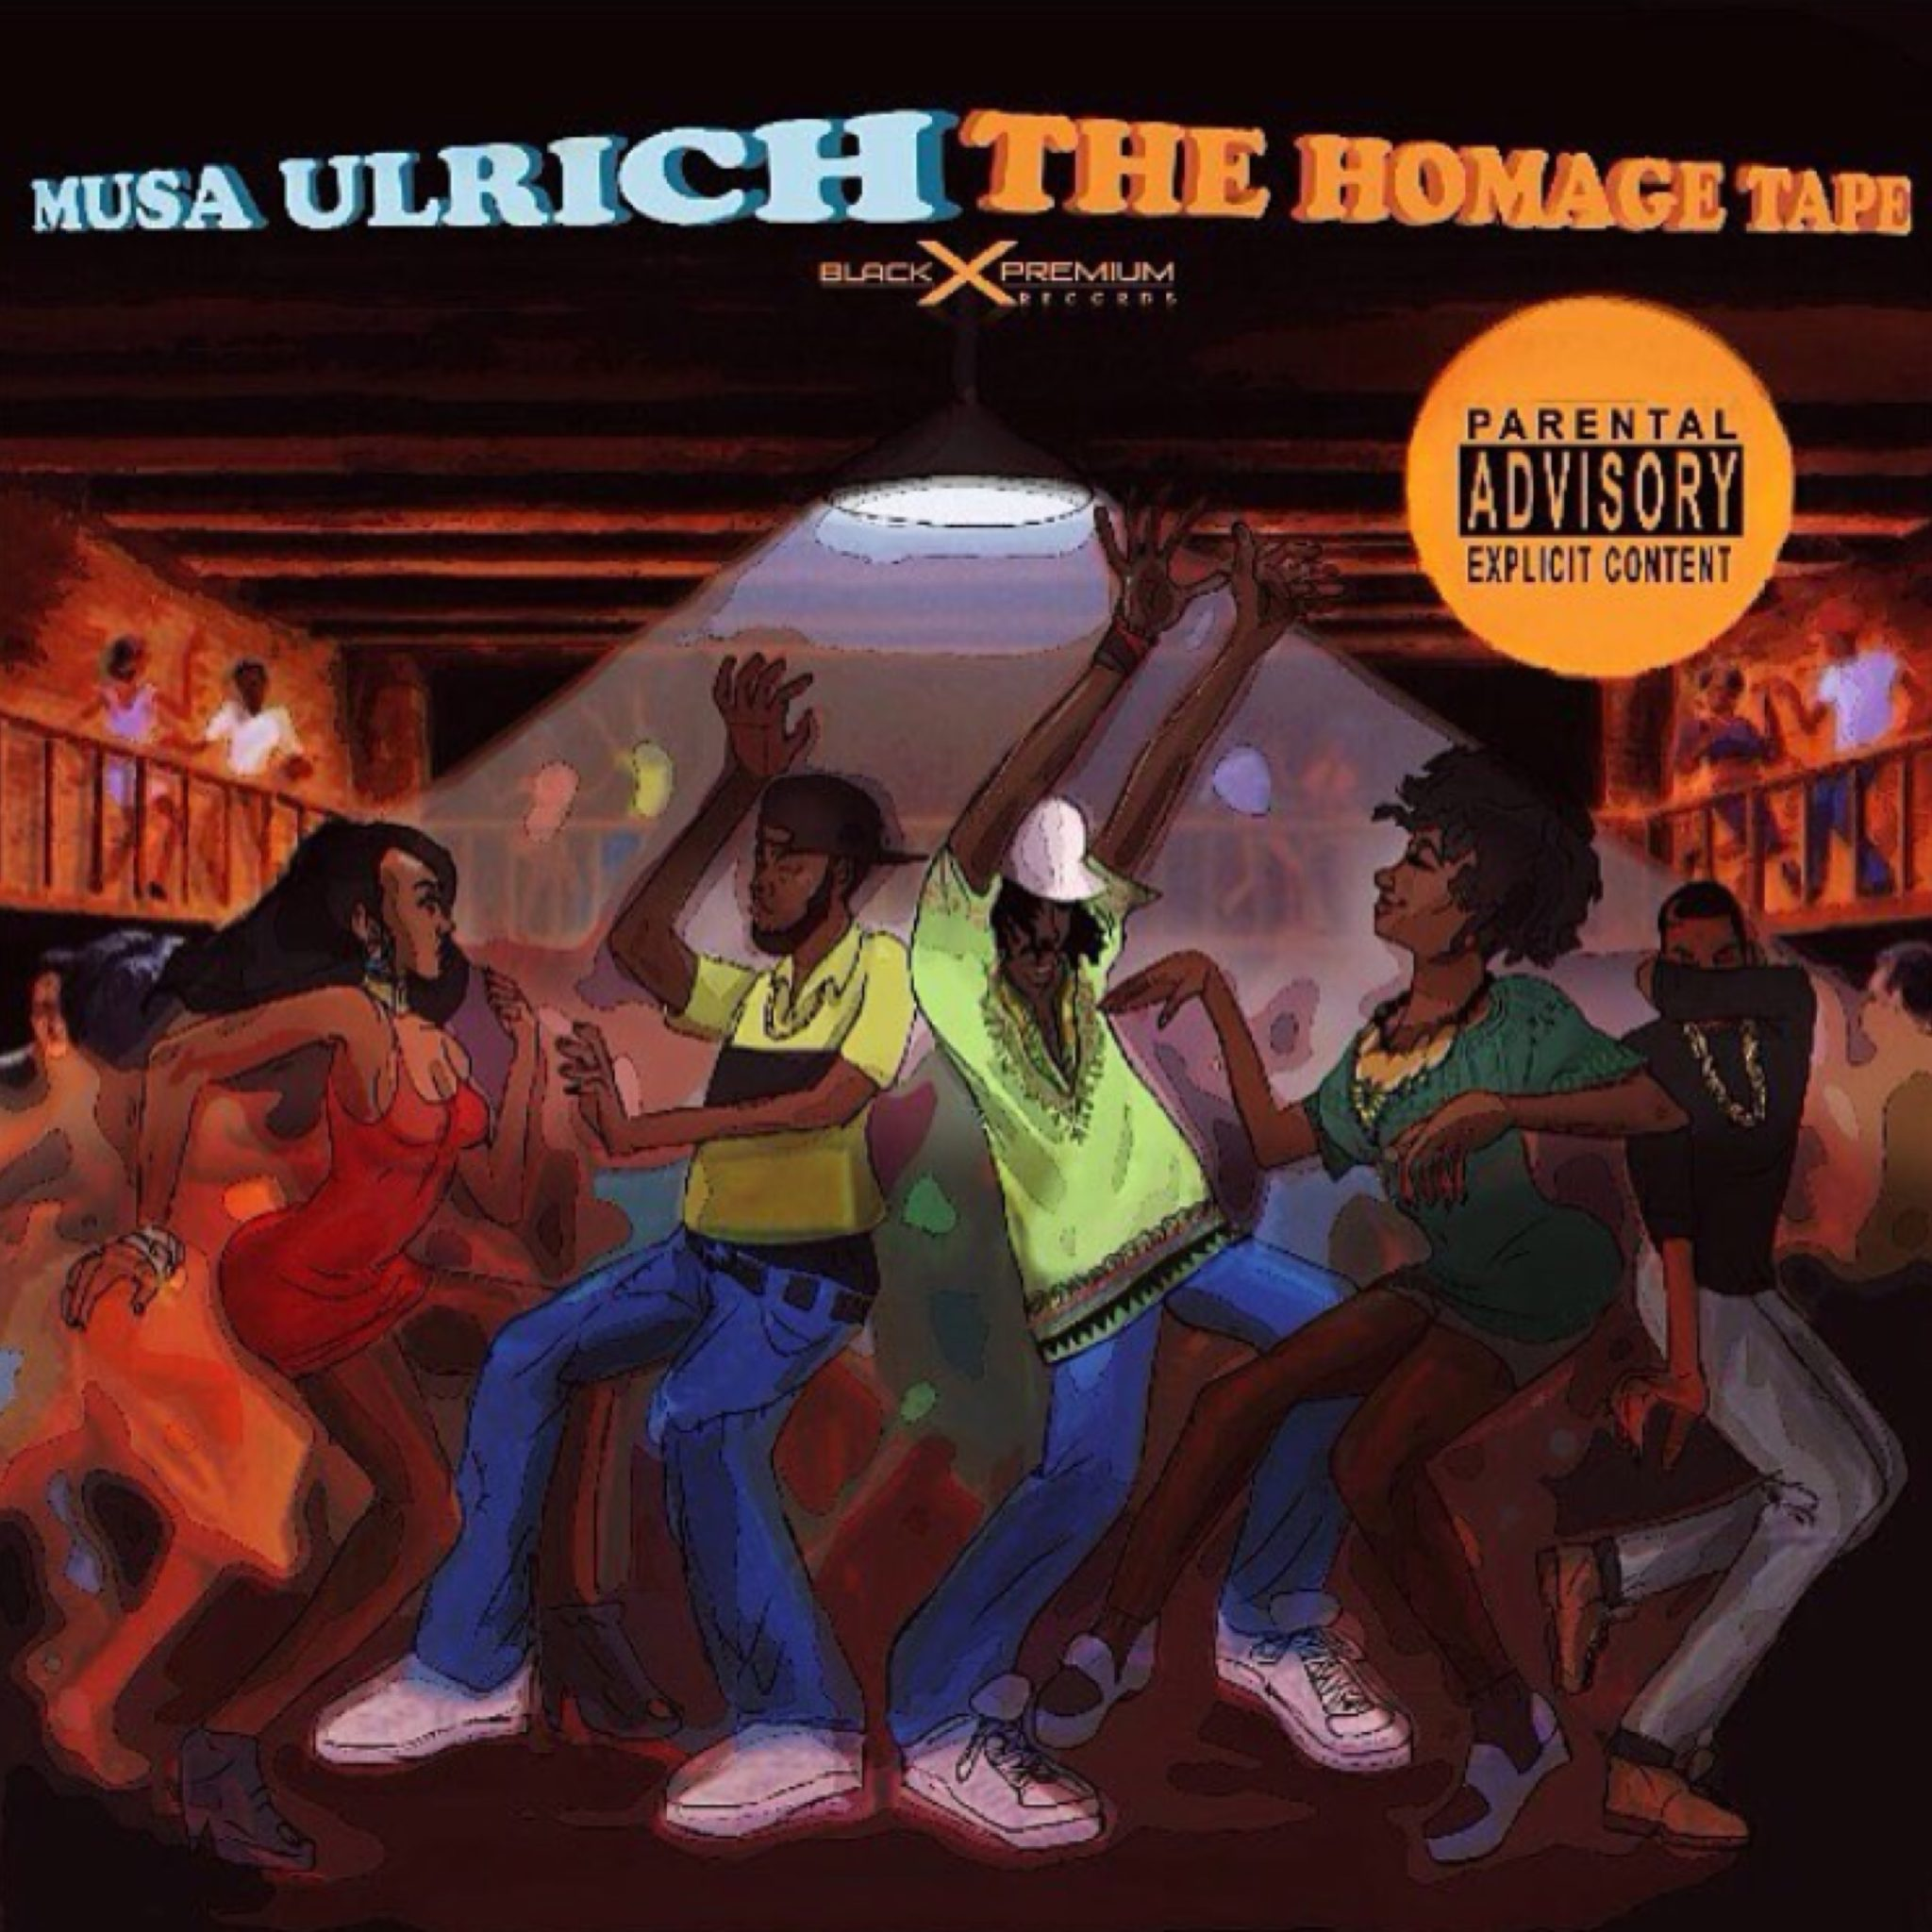 """Musa Ulrich - """"The Homage Tape"""" (Mixtape)"""